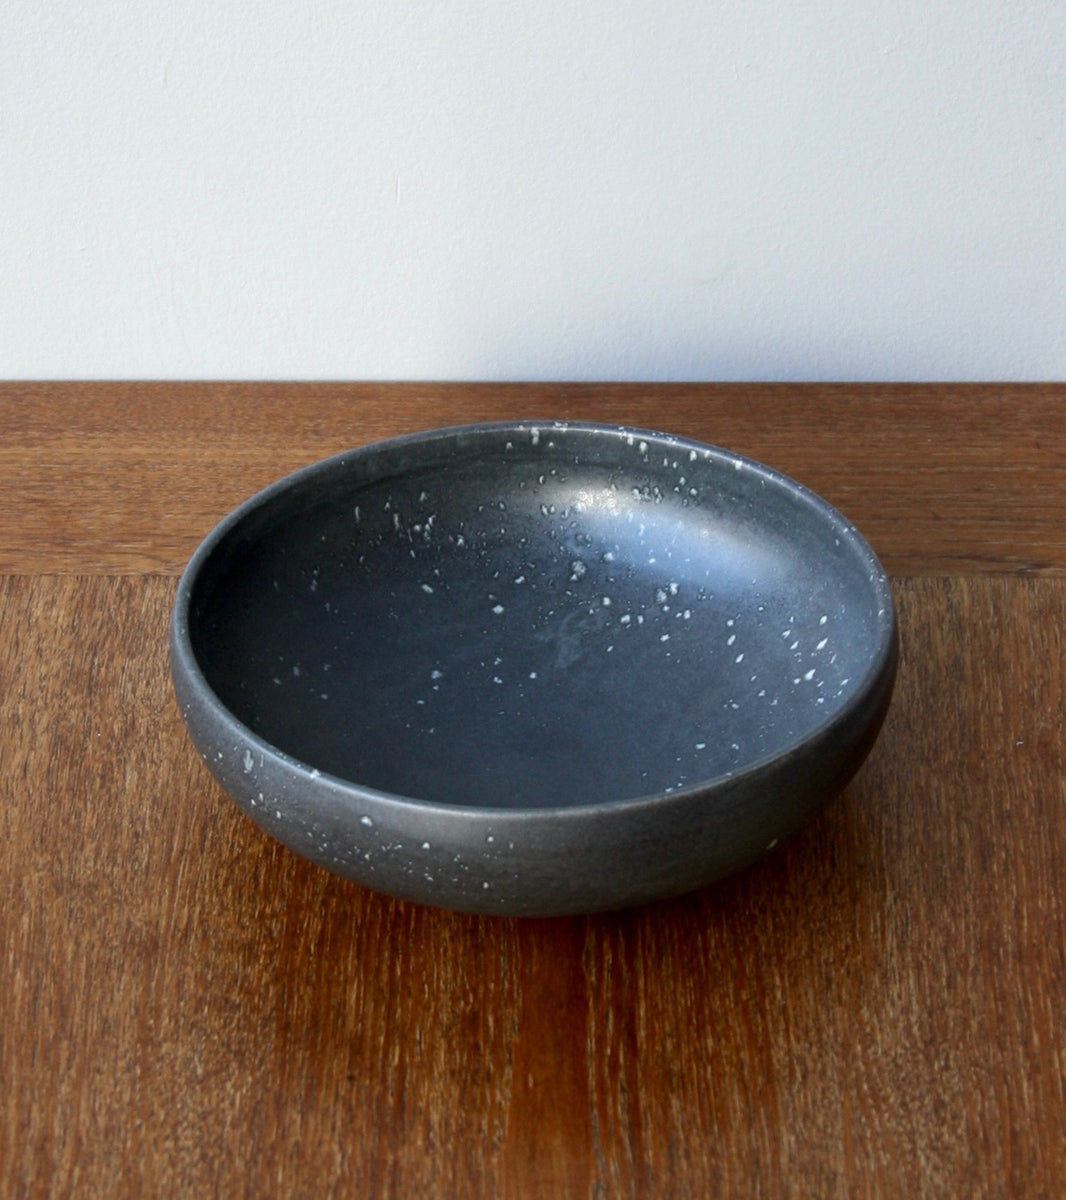 Large Shallow Bowl 13Black & White Glaze Kasper Würtz - Image 1